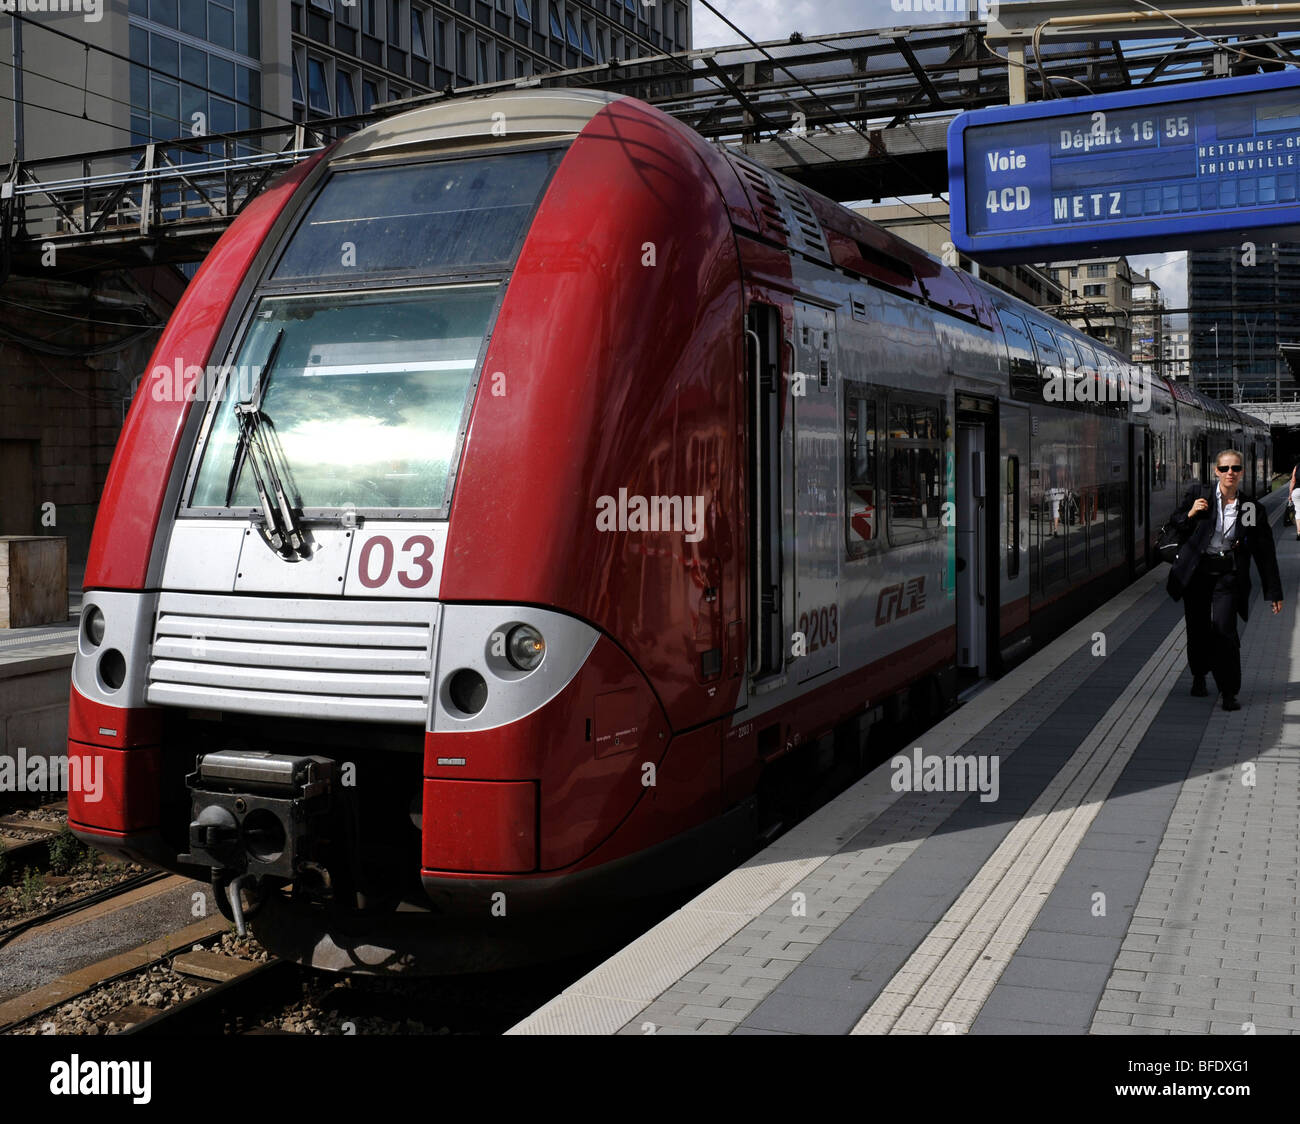 Coradia Duplex train in Luxembourg Central Railway station, Luxembourg. - Stock Image